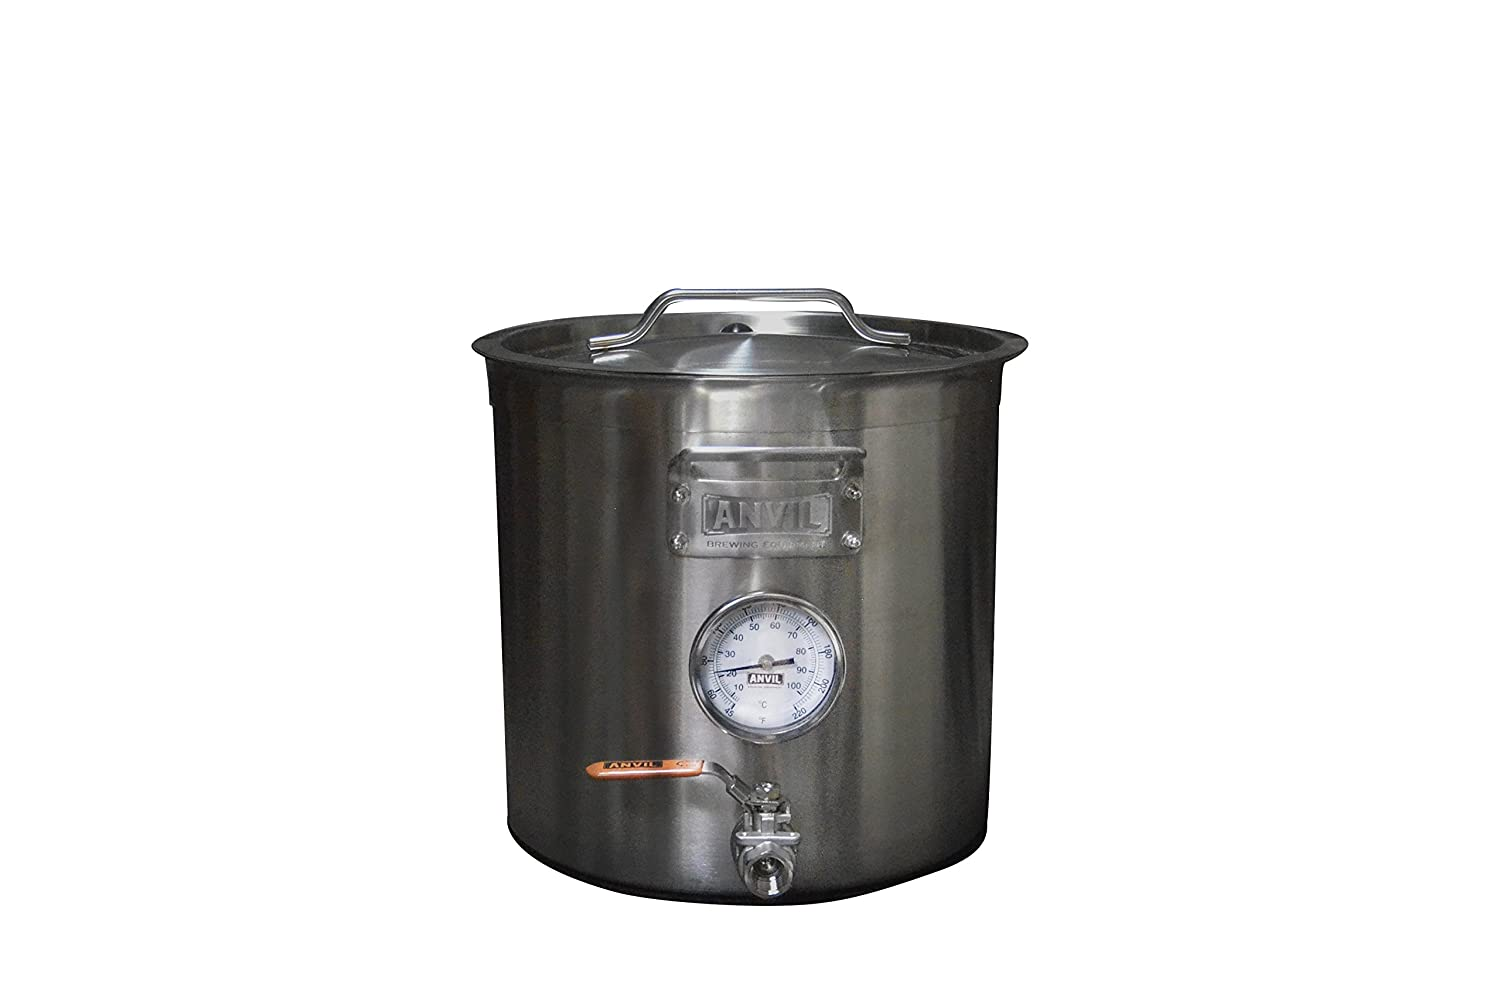 Anvil Brew Kettle, 5.5 gal